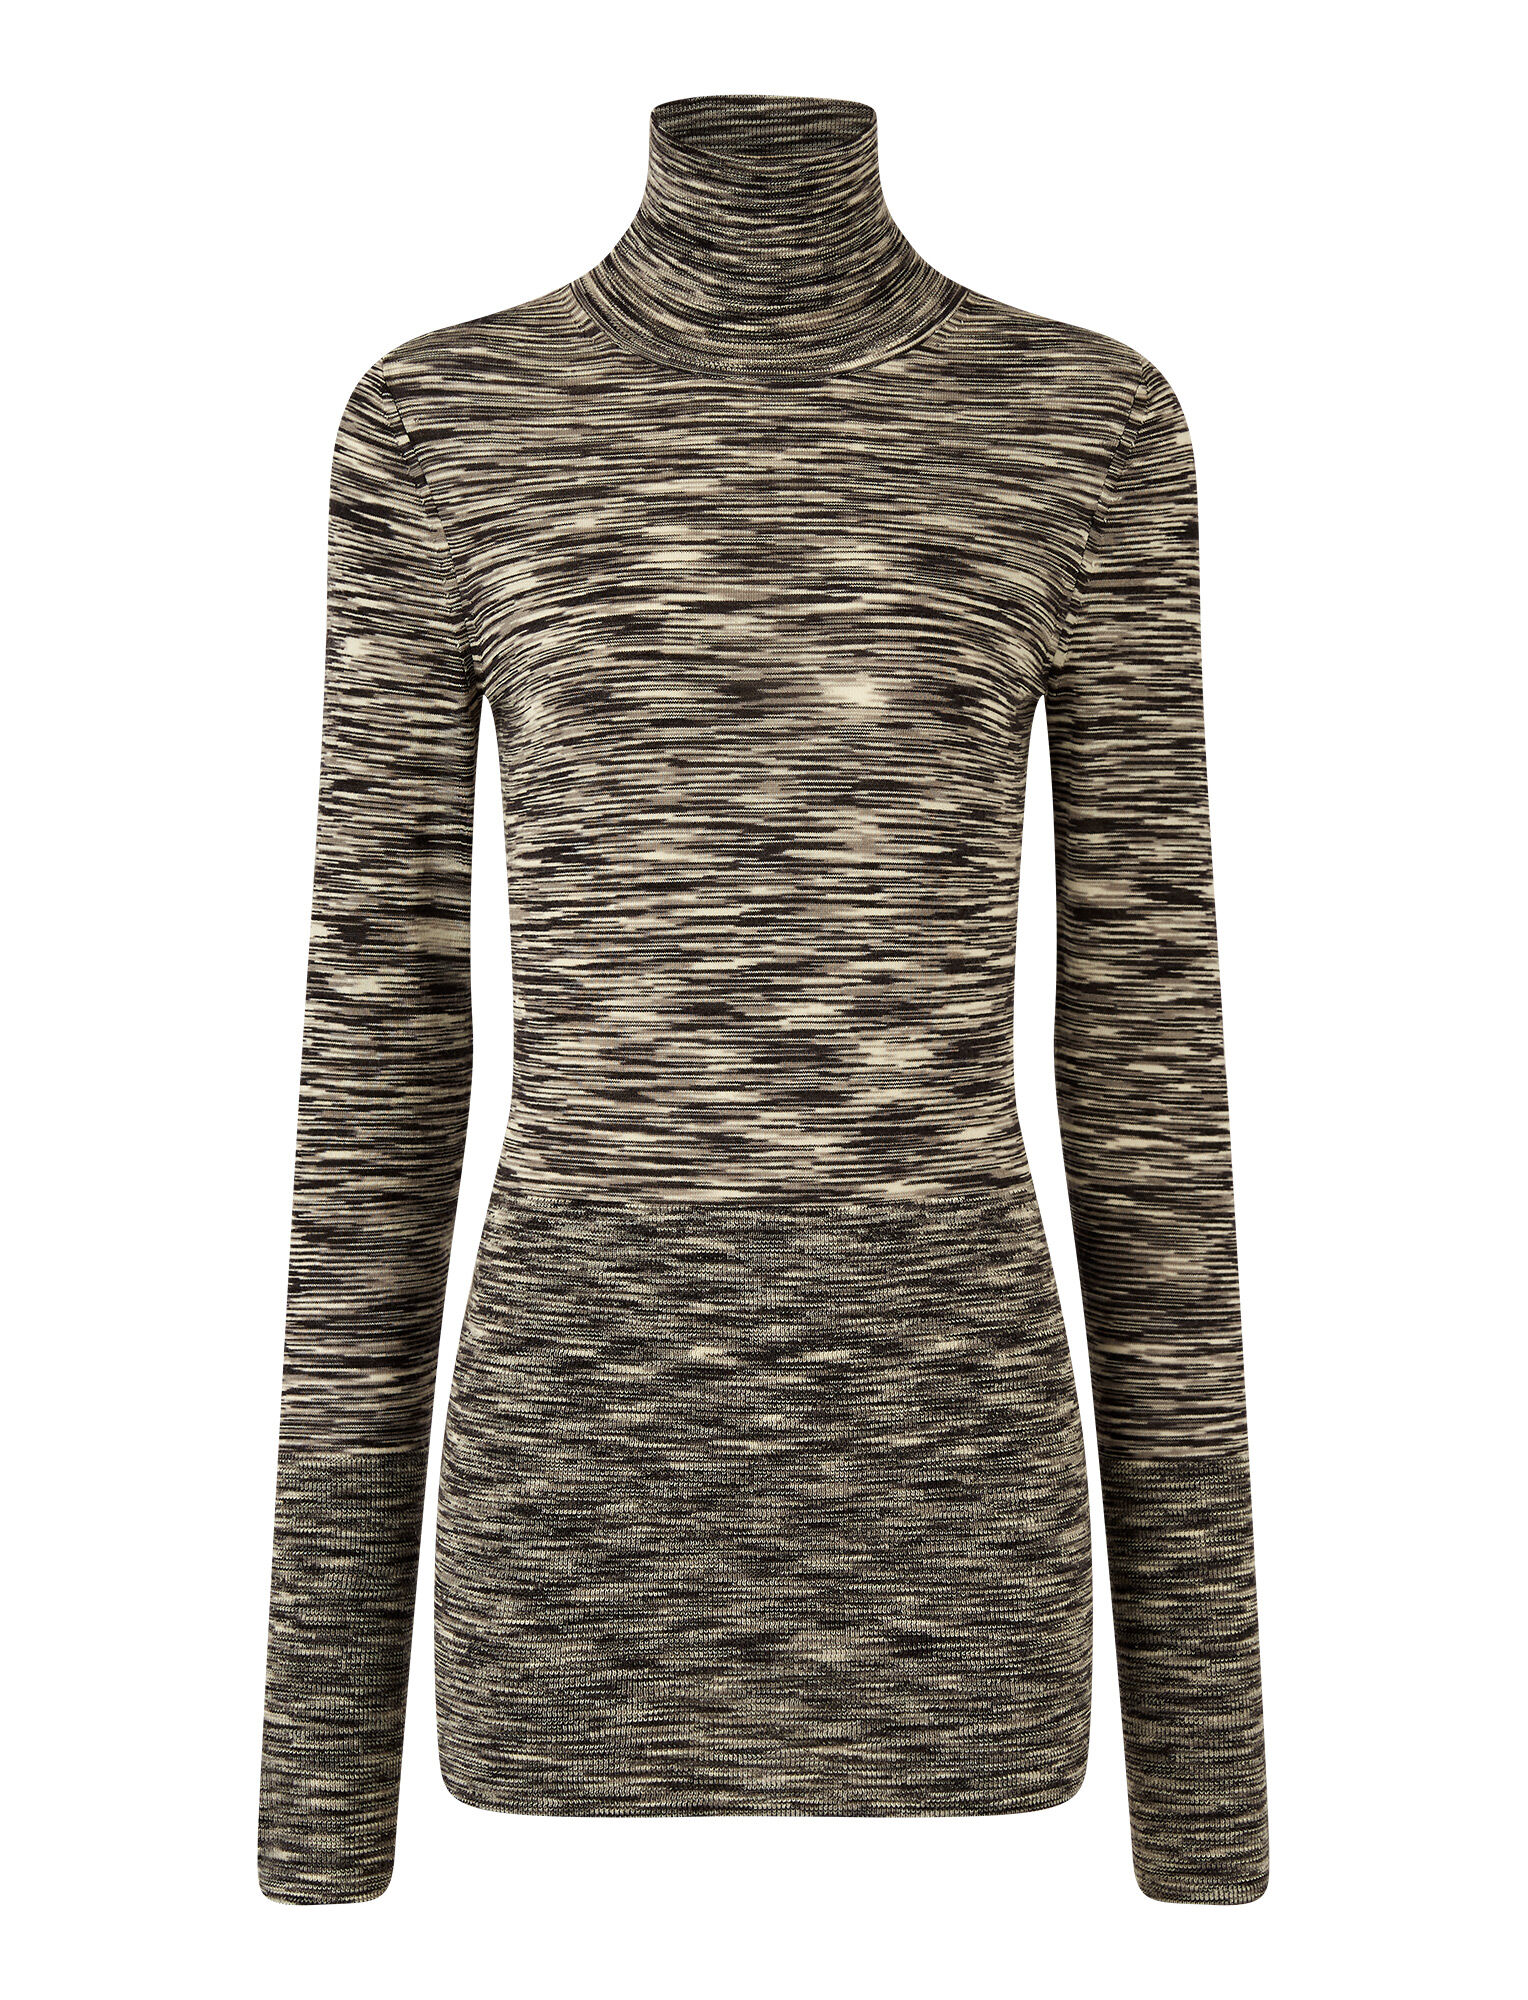 Joseph, Roll Neck Printed Wool Knit, in Black Combo